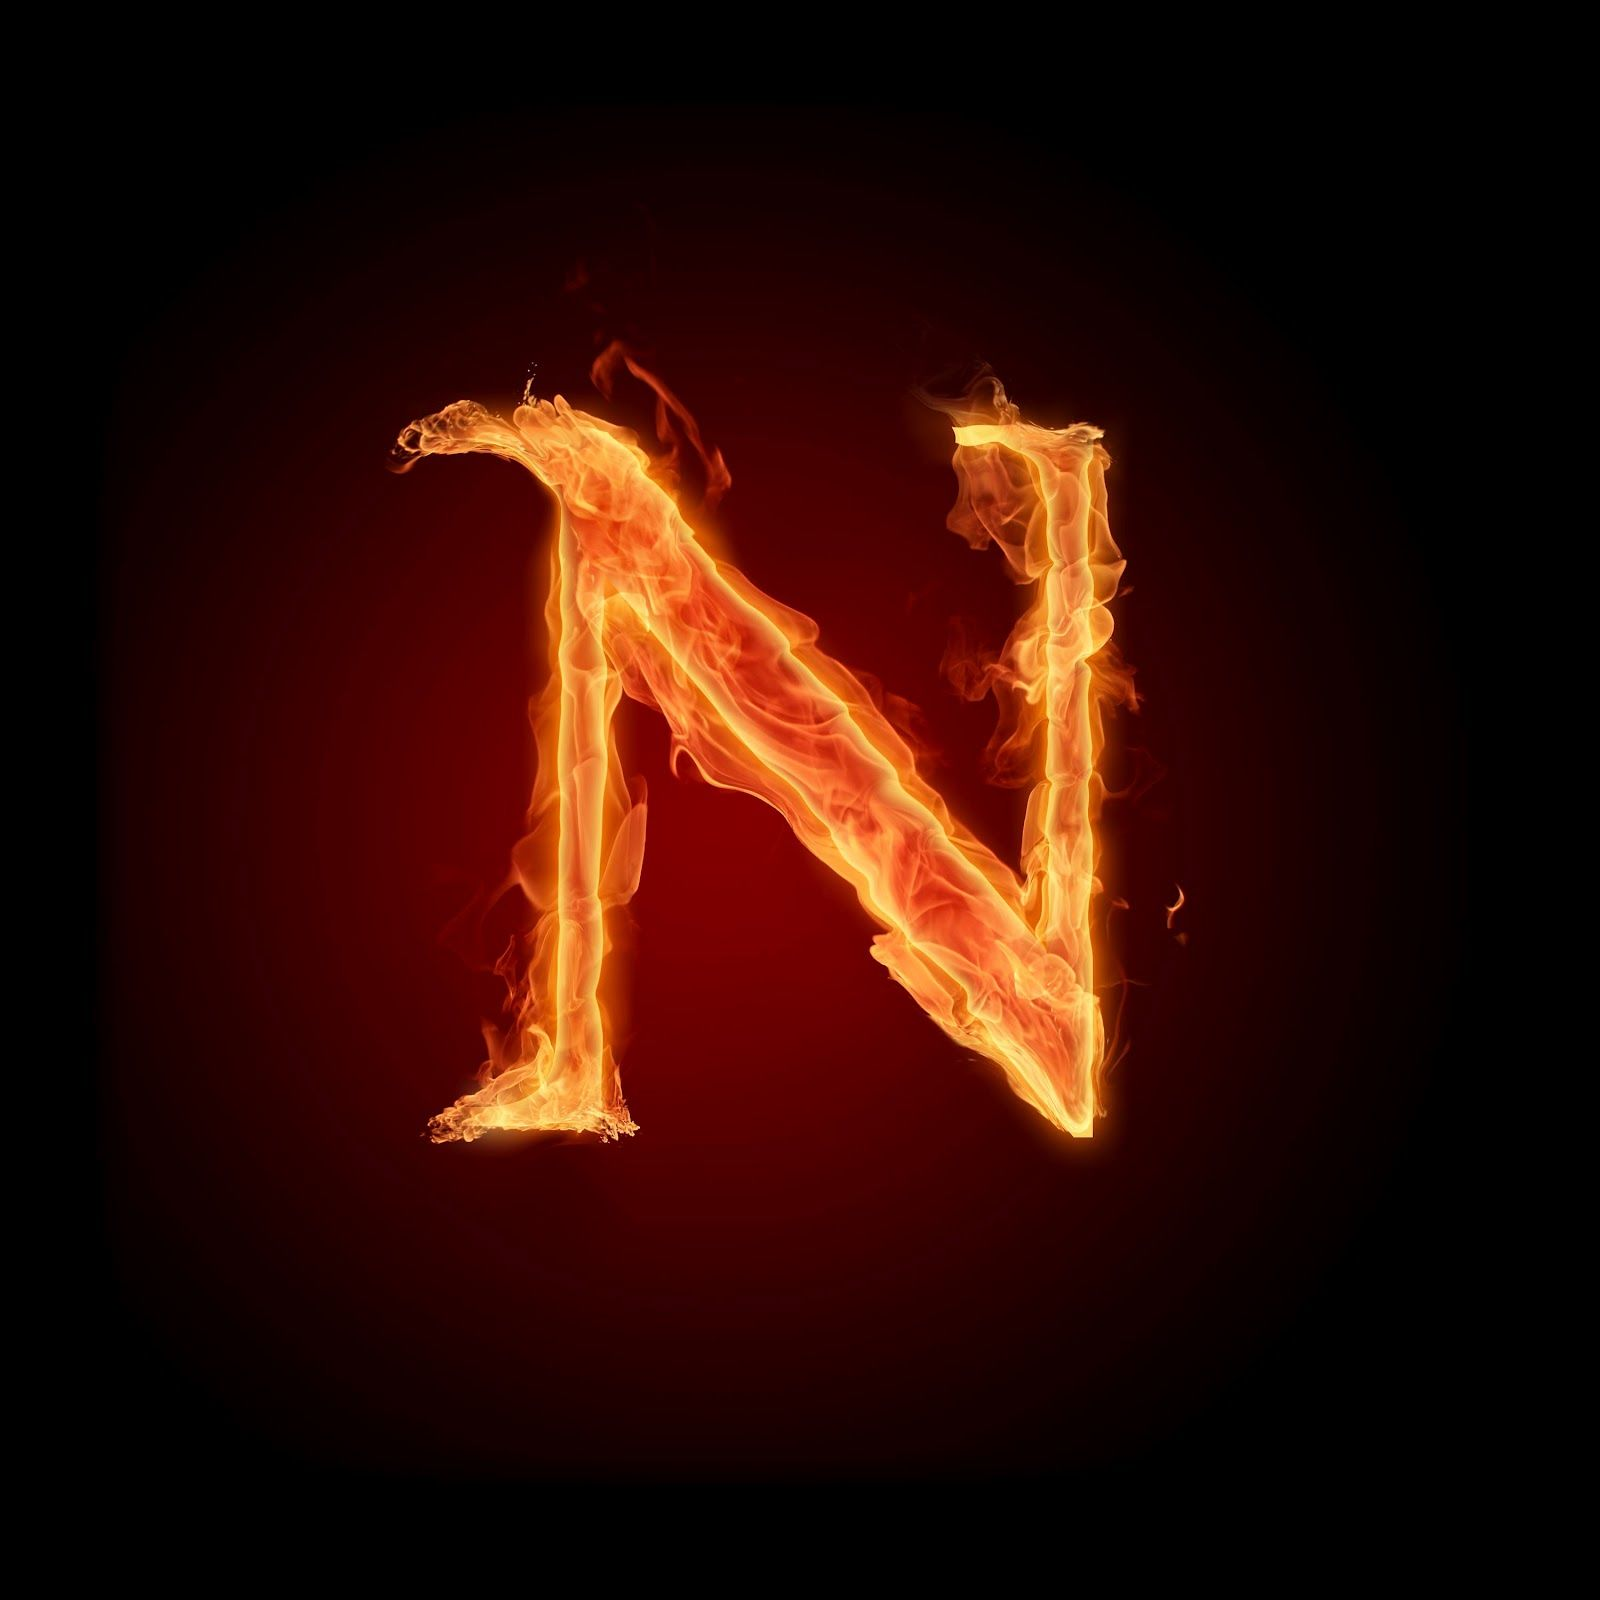 N Alphabet Wallpaper Mobile Best Games Wallpapers Pinterest